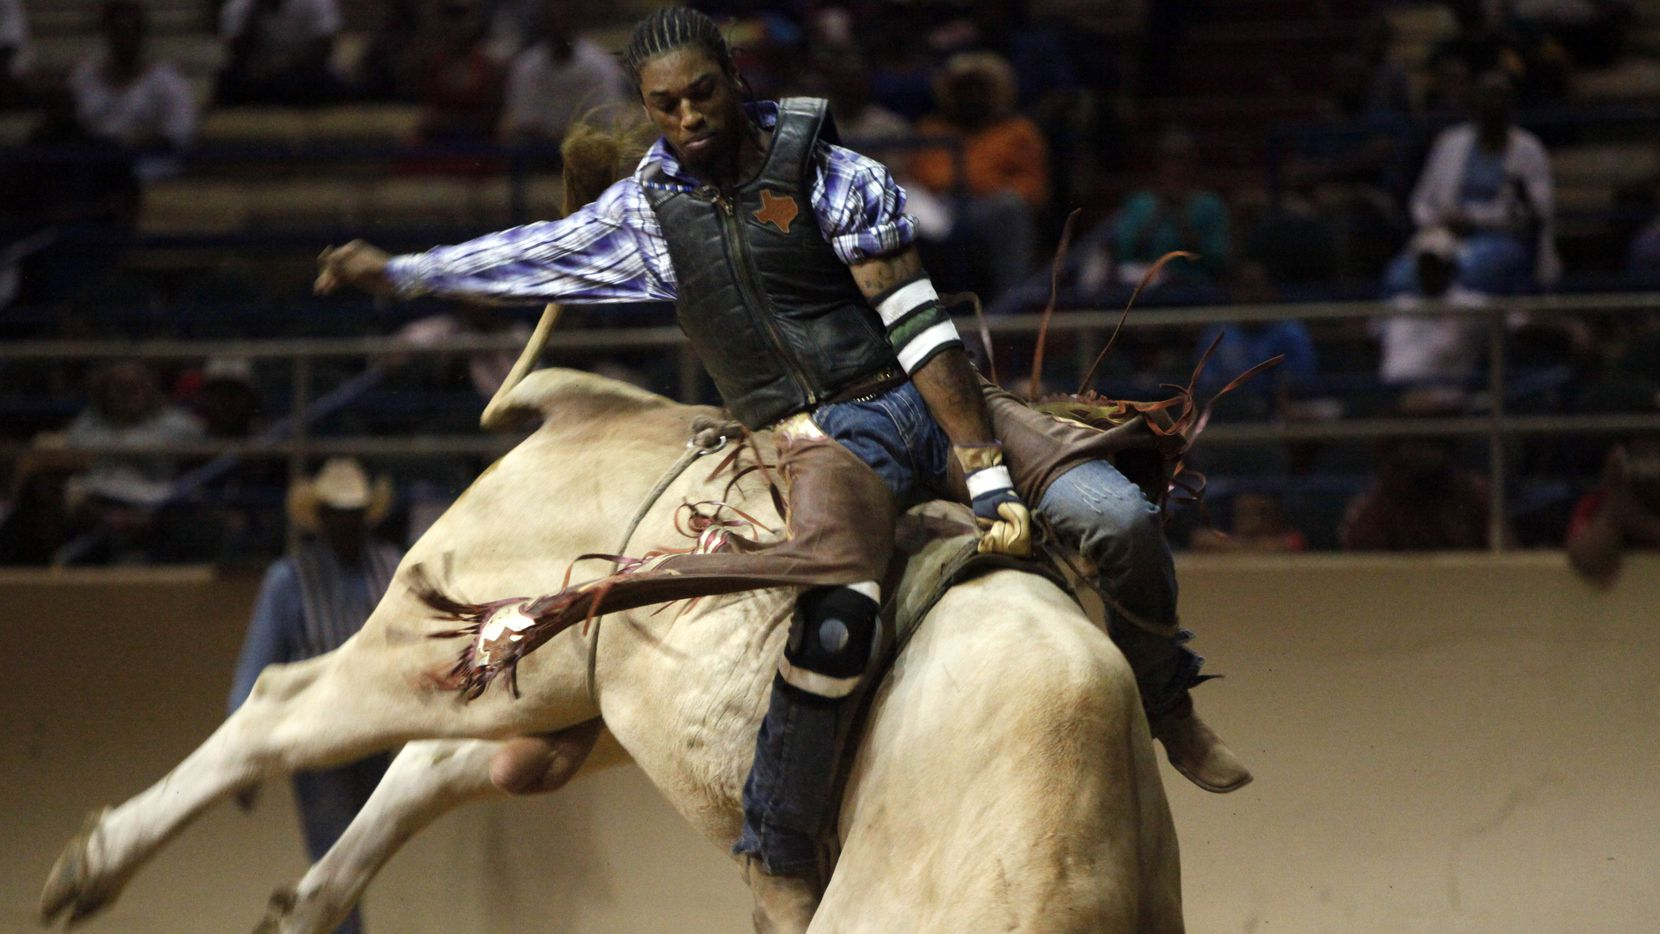 Bull rider Kendrick Mack competes in the bull riding competition at the 26th Annual Texas Black Invitational Rodeo, on Saturday, June 21, 2014 at the State Fair Coliseum in Dallas. The annual rodeo hosted a variety of events and competitions including live music by the Big Charles Young band; bronc riding, steer wrestling, bull riding and a mexican style rodeo performance.